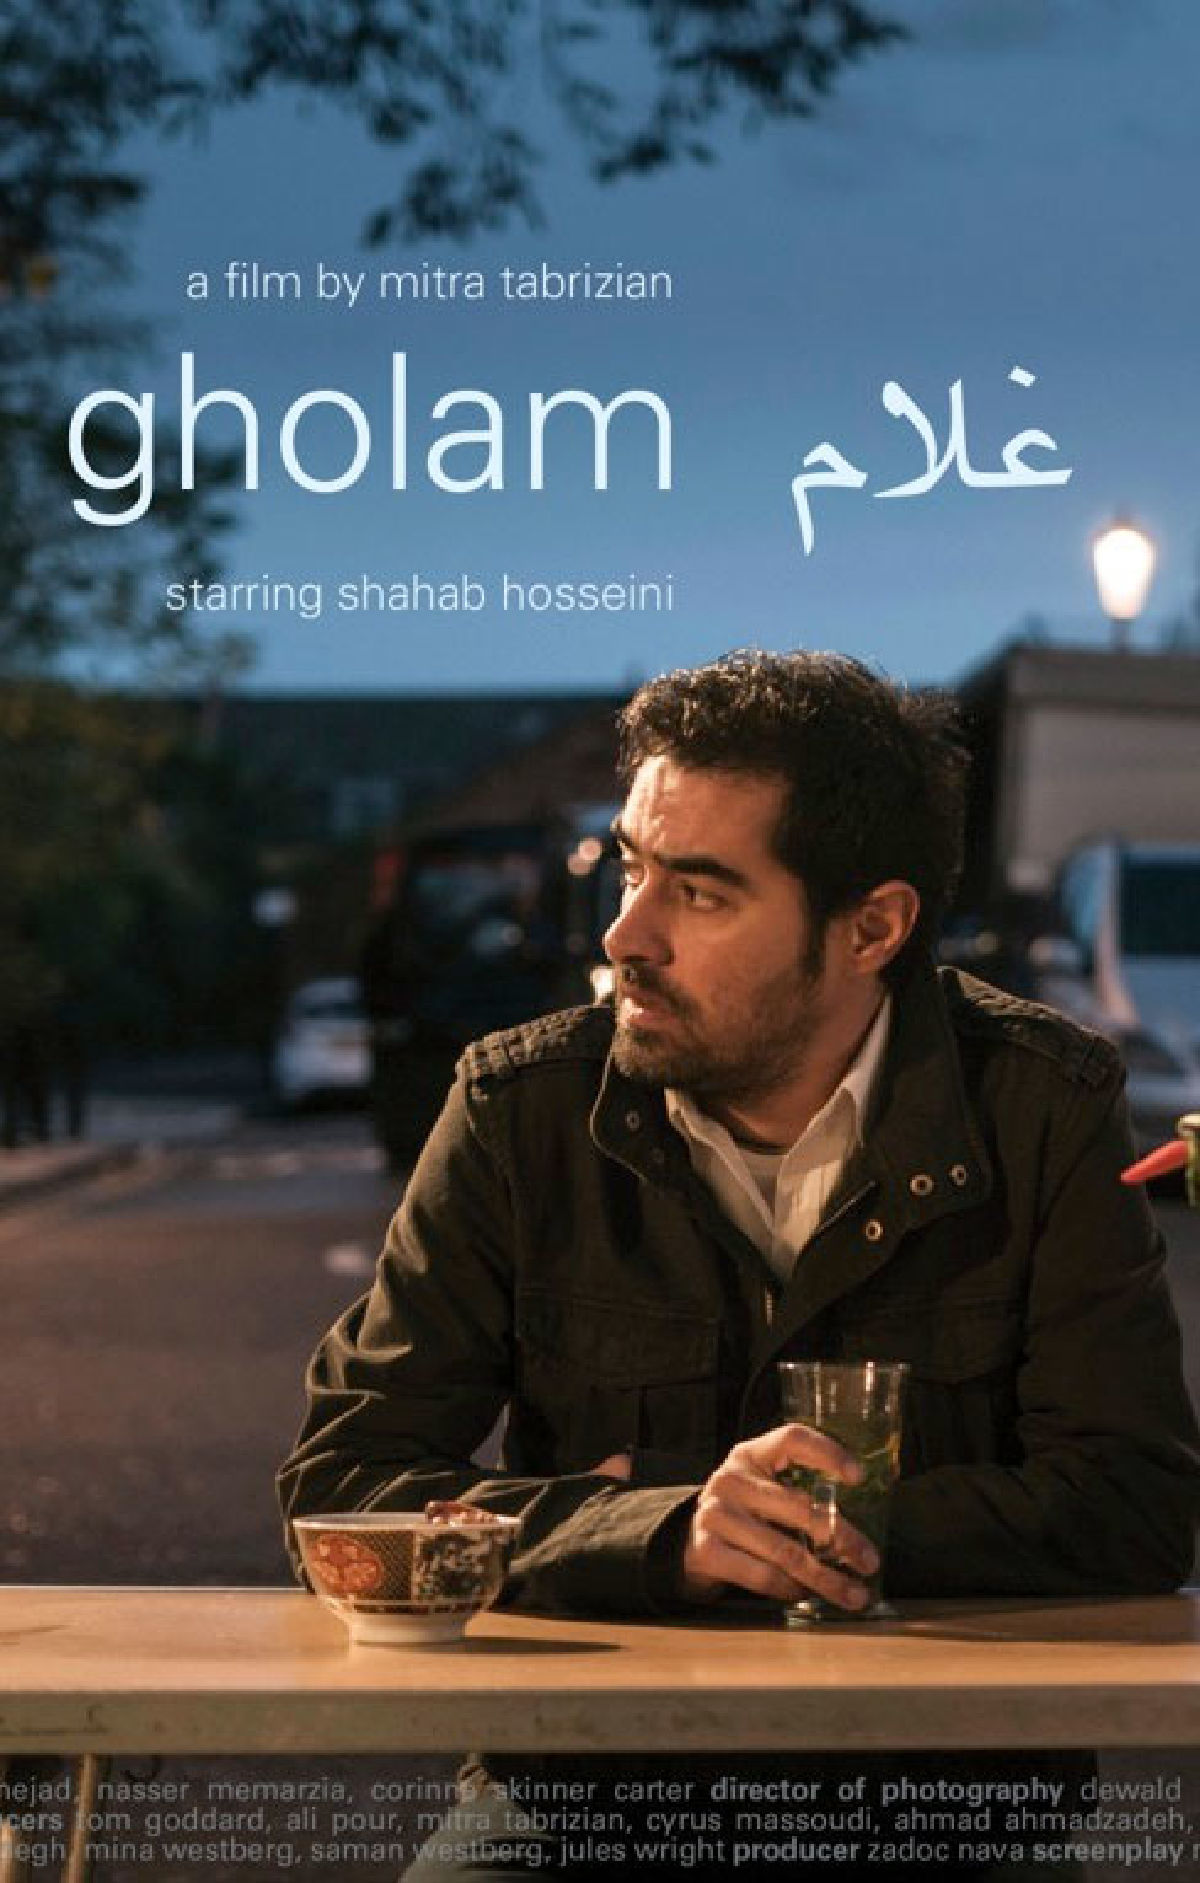 'Gholam' movie poster